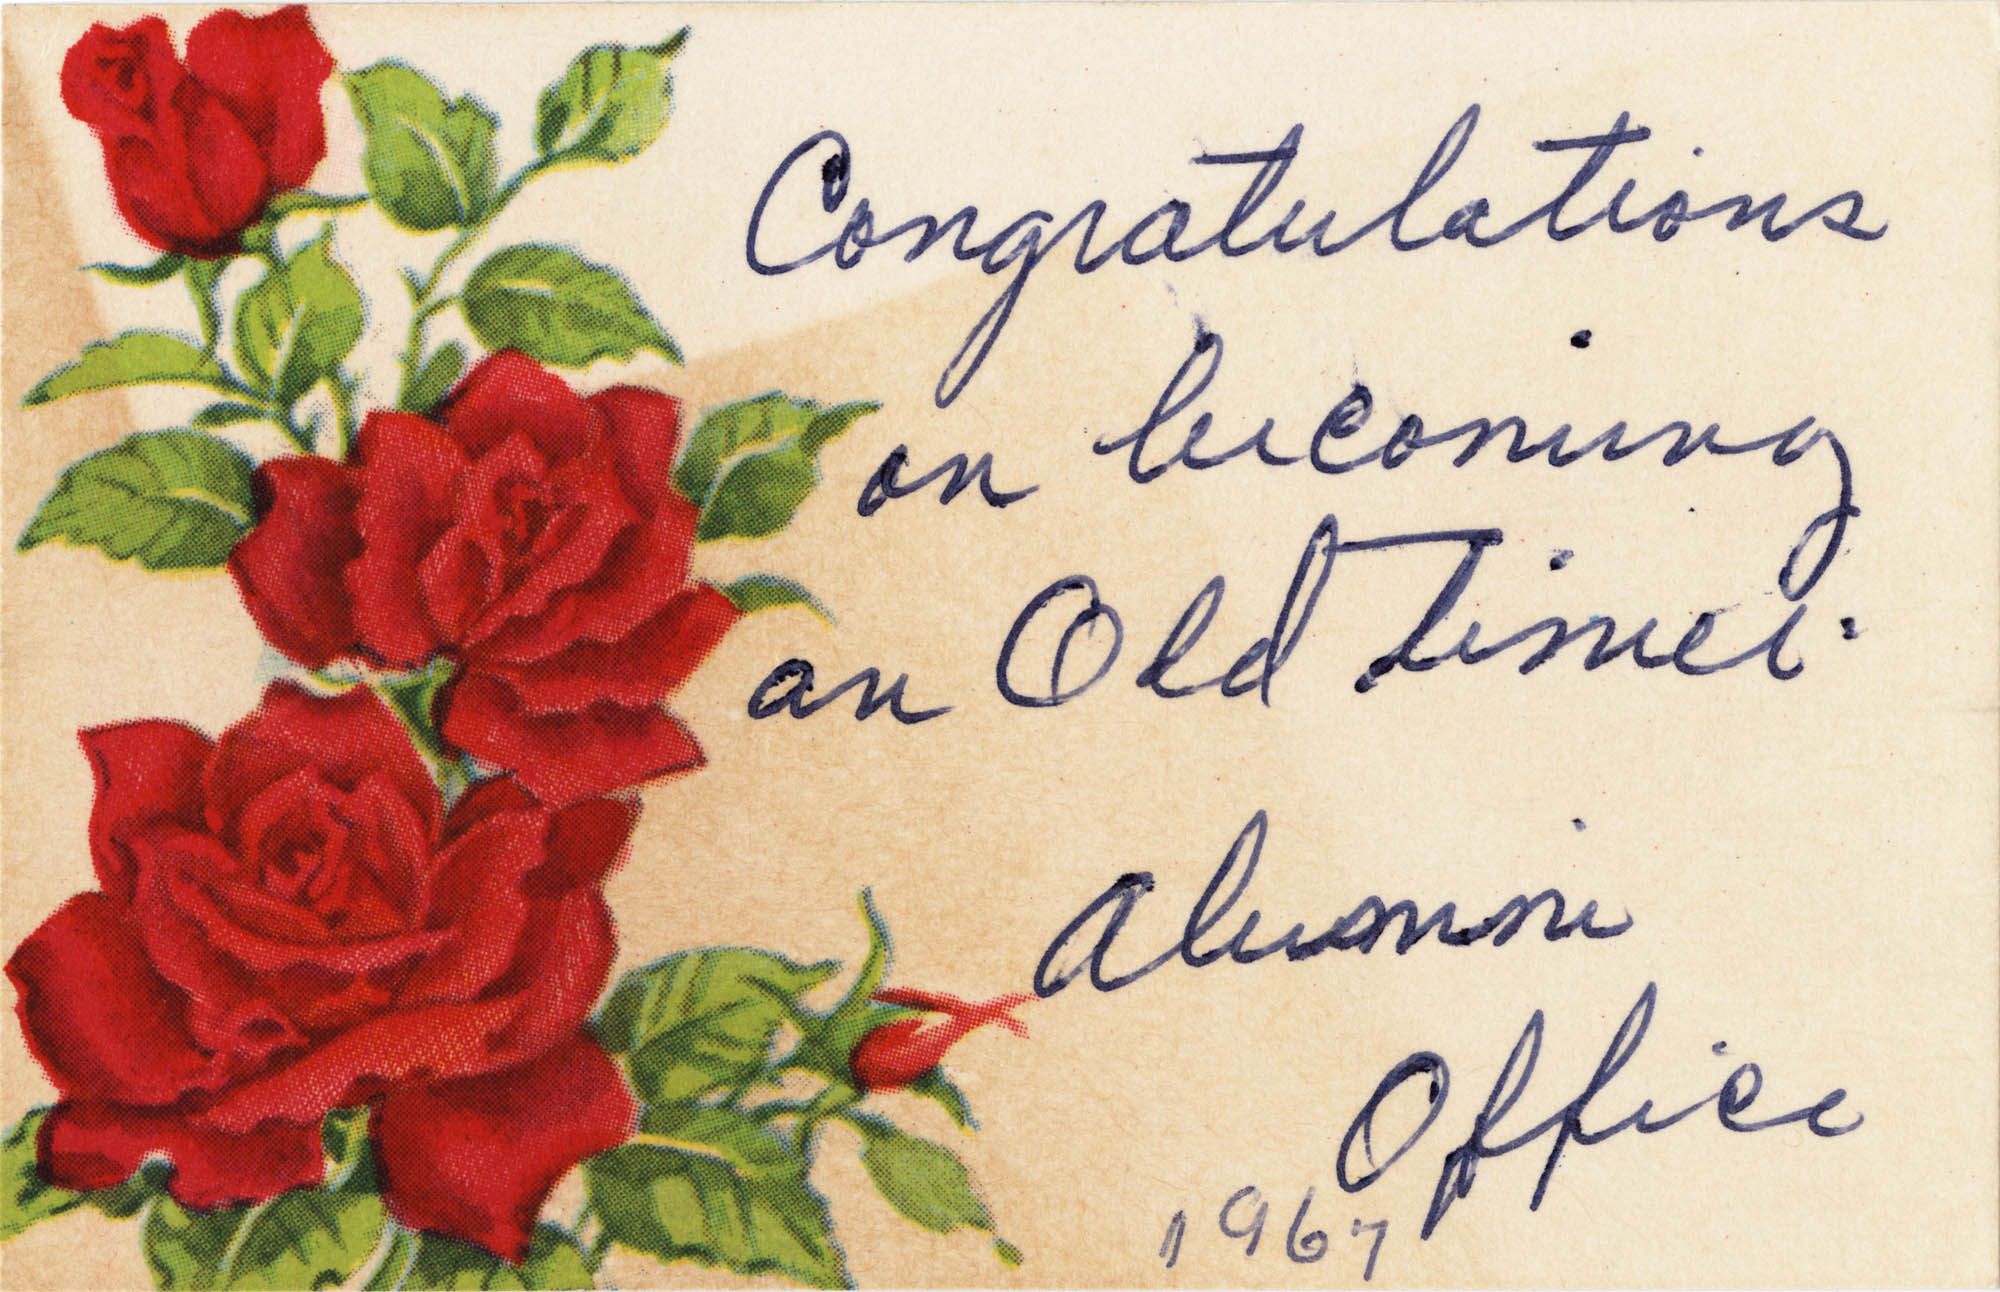 Congratulations on becoming an Old Timer